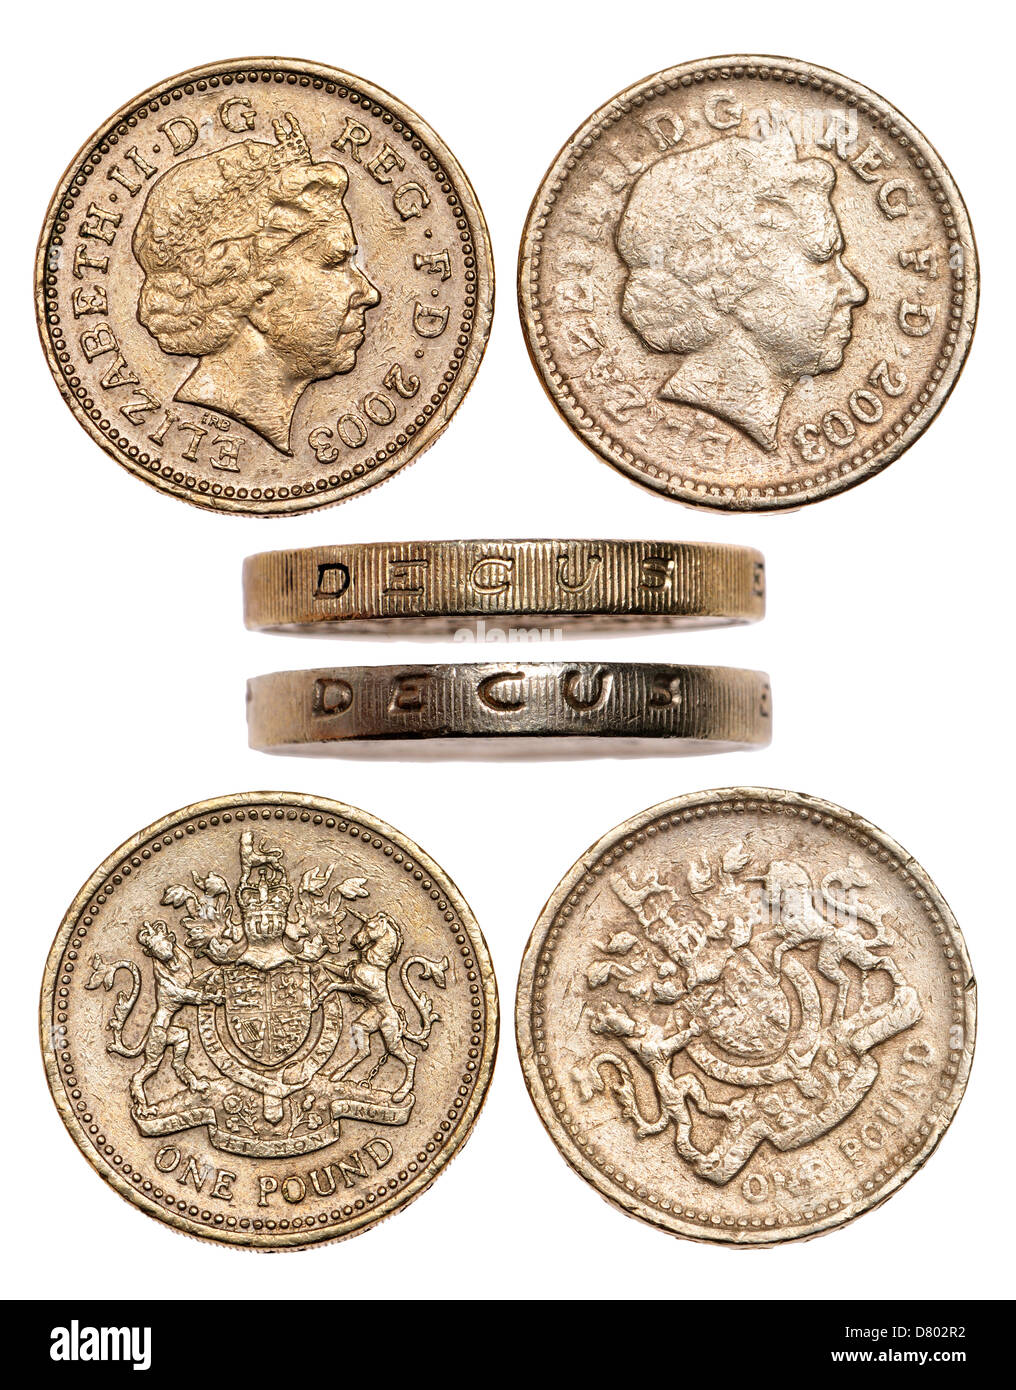 Real and counterfeit pound coins. (see description ) - Stock Image